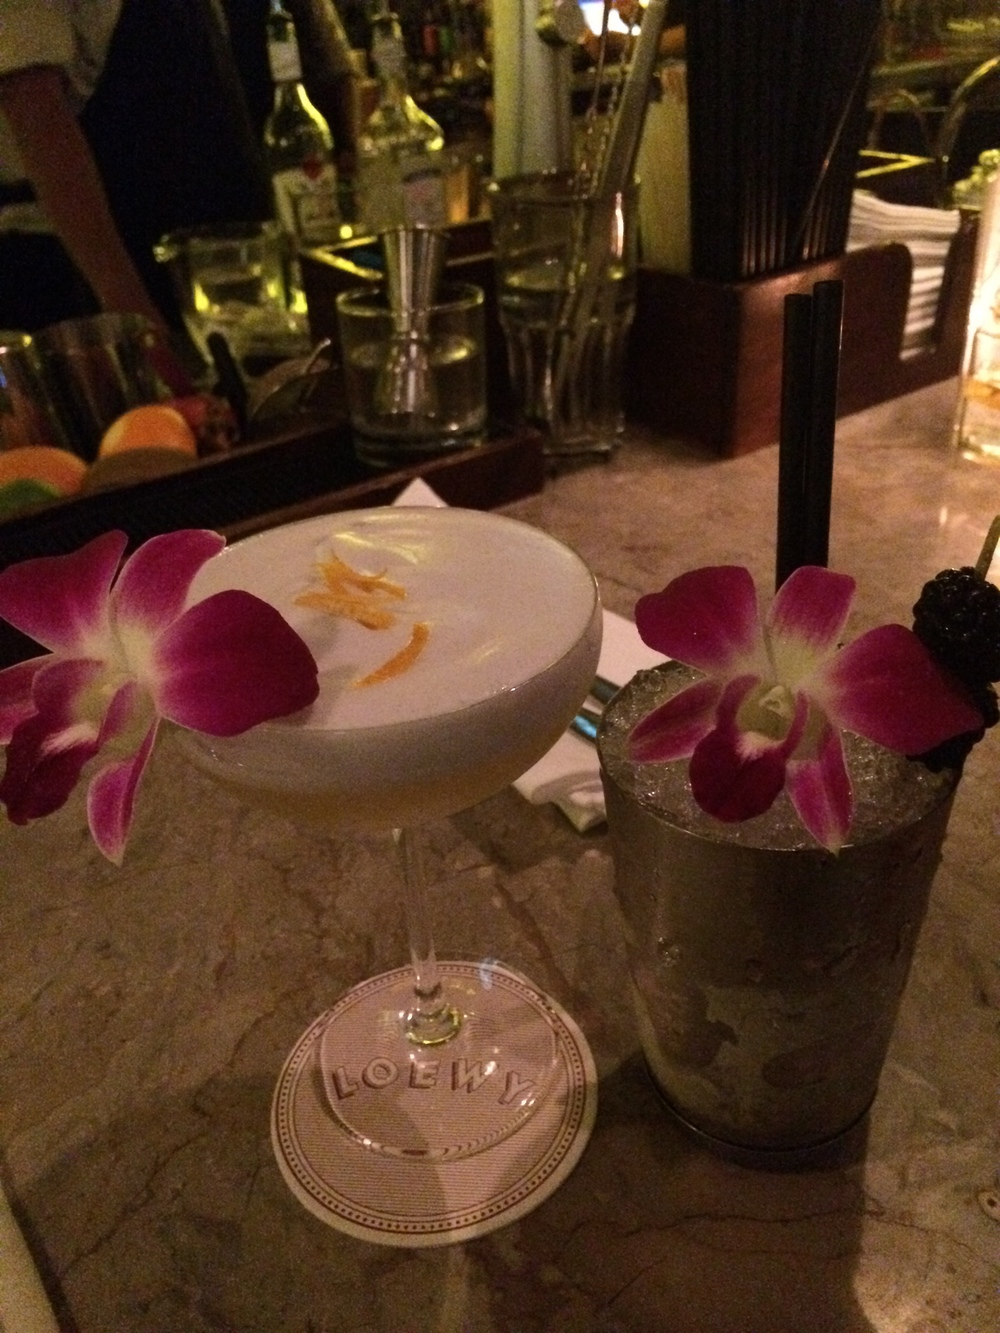 Cocktails at Loewys